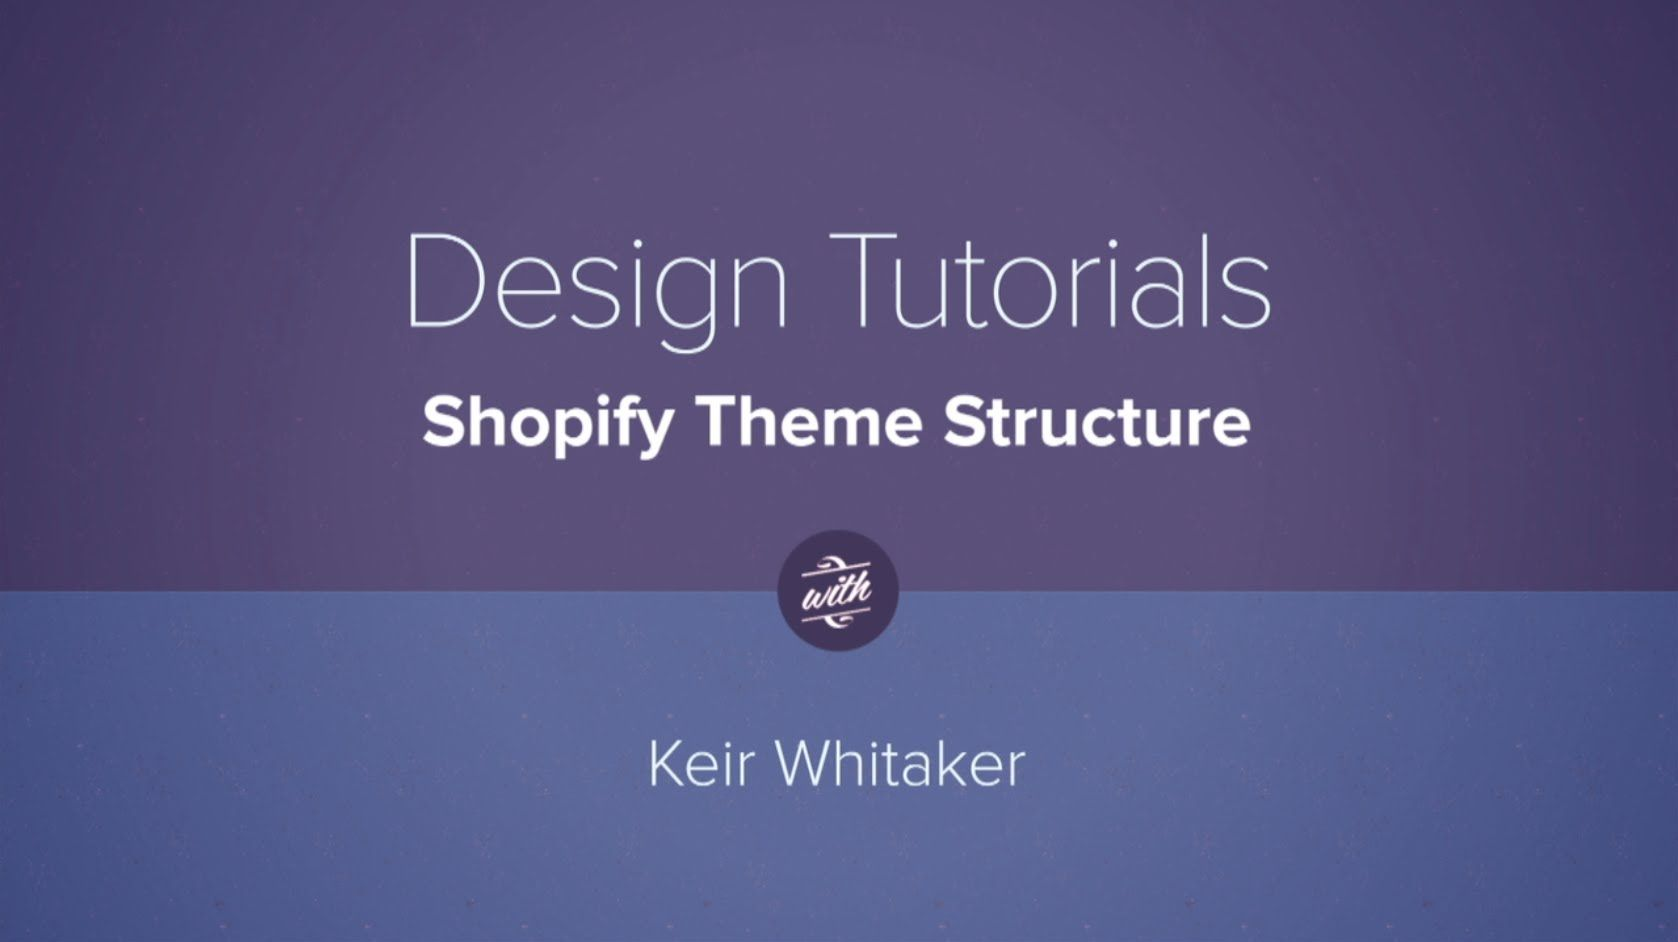 Shopify Design Tutorials: Shopify Theme Structure